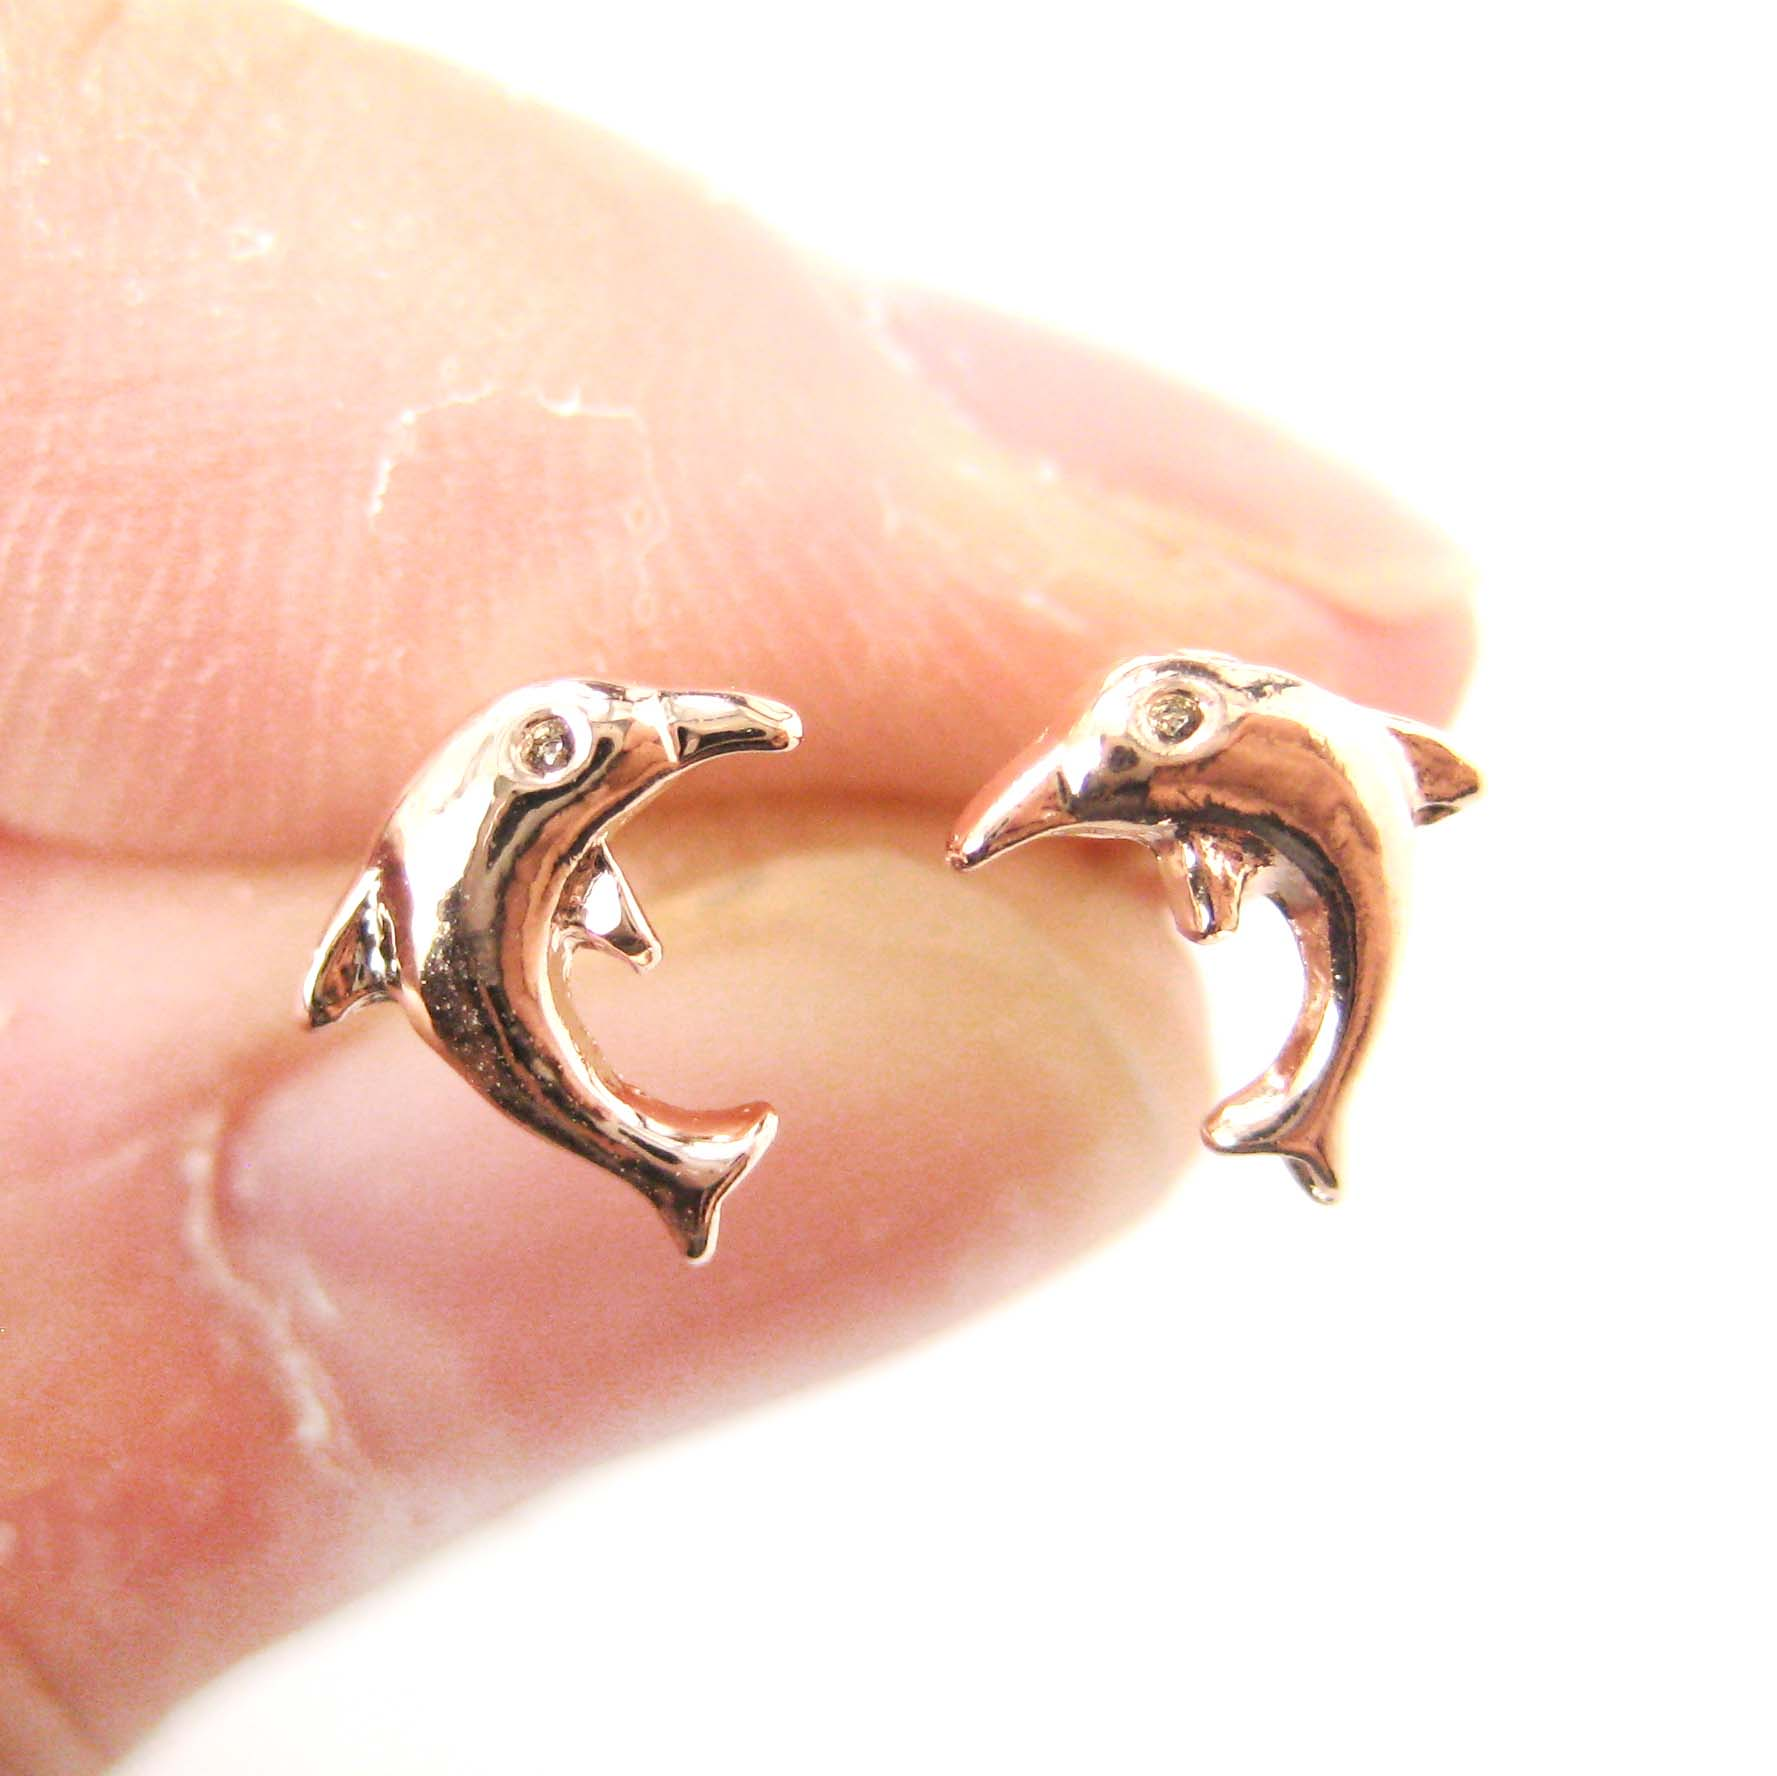 964caaae2 Dotoly Plus   Small Dolphin Fish Sea Animal Stud Earrings in Rose ...